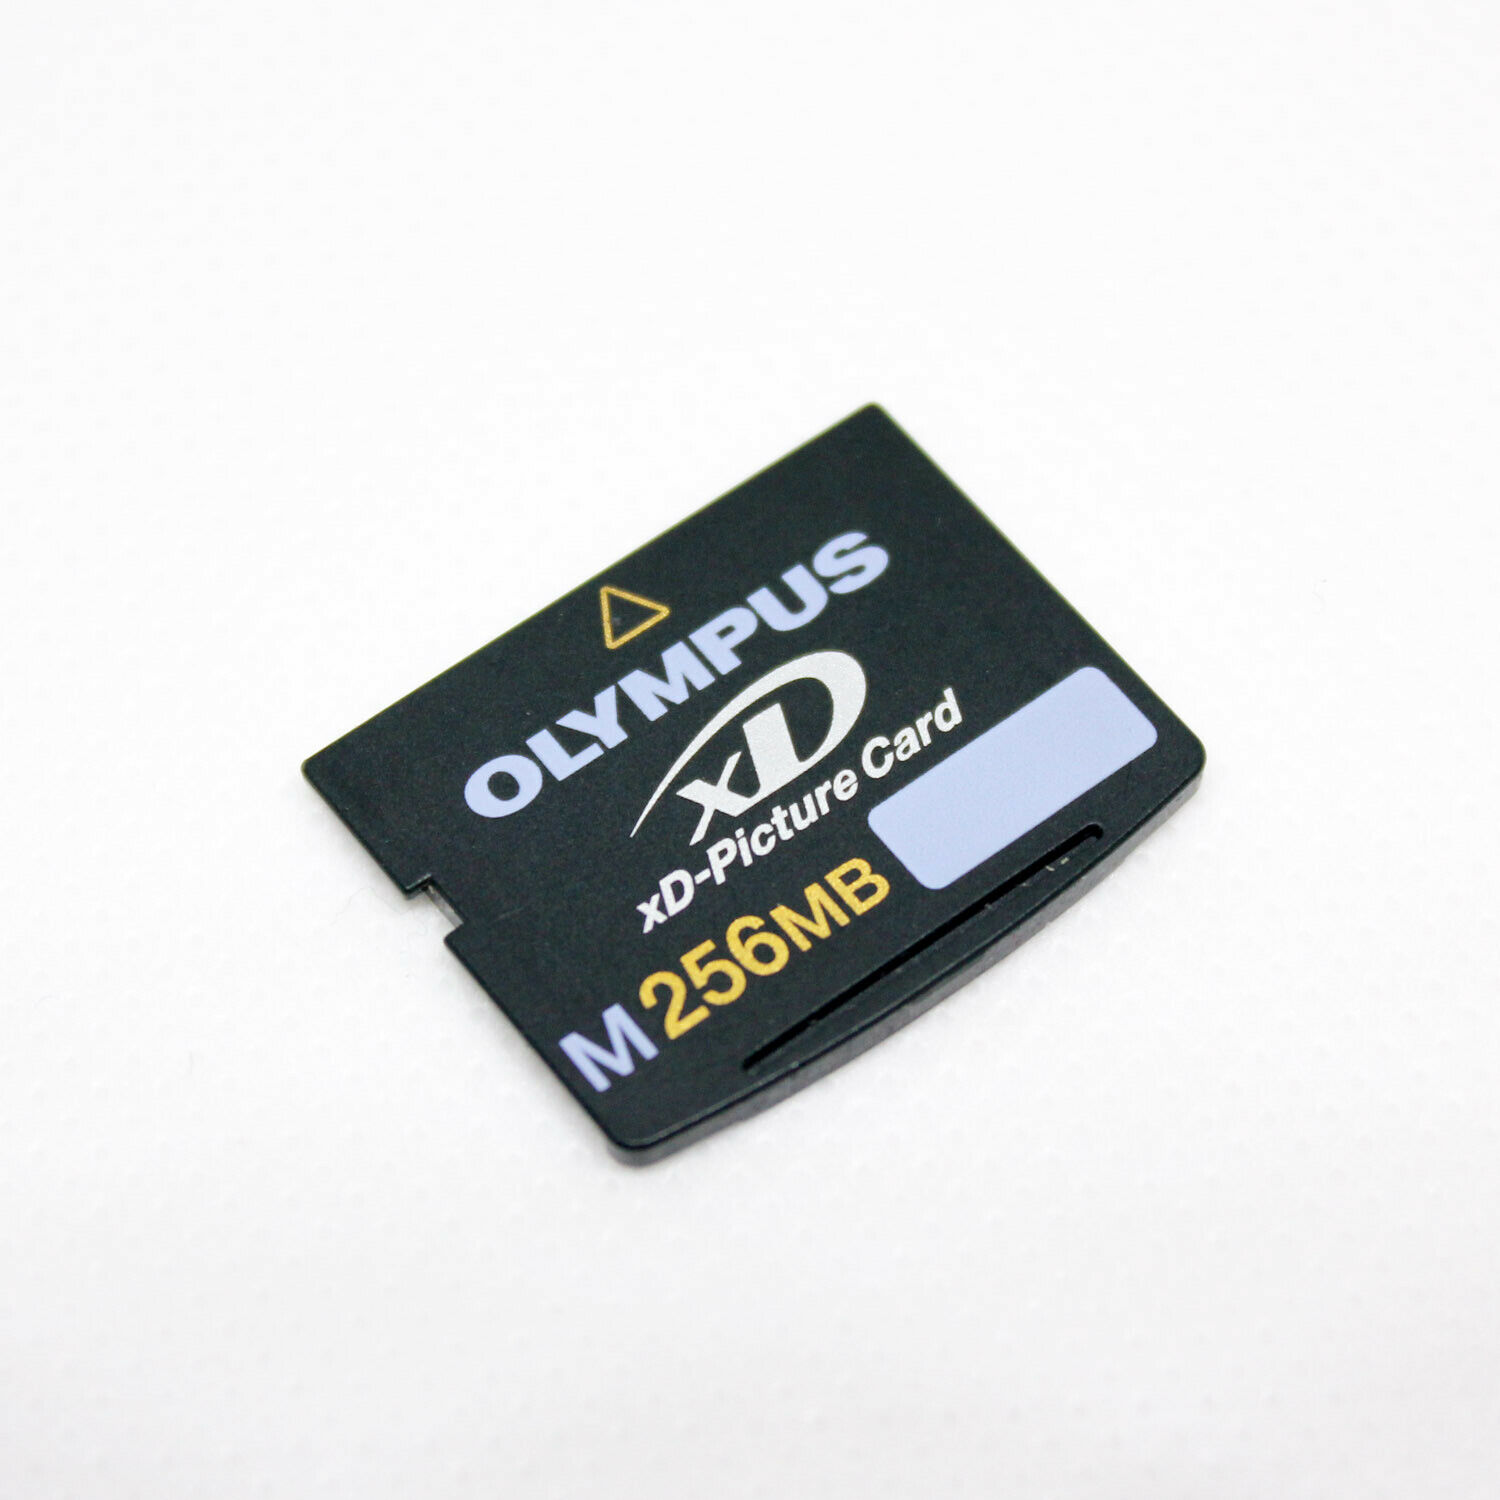 Olympus 1GB XD Type M Picture Card with Panorama Function